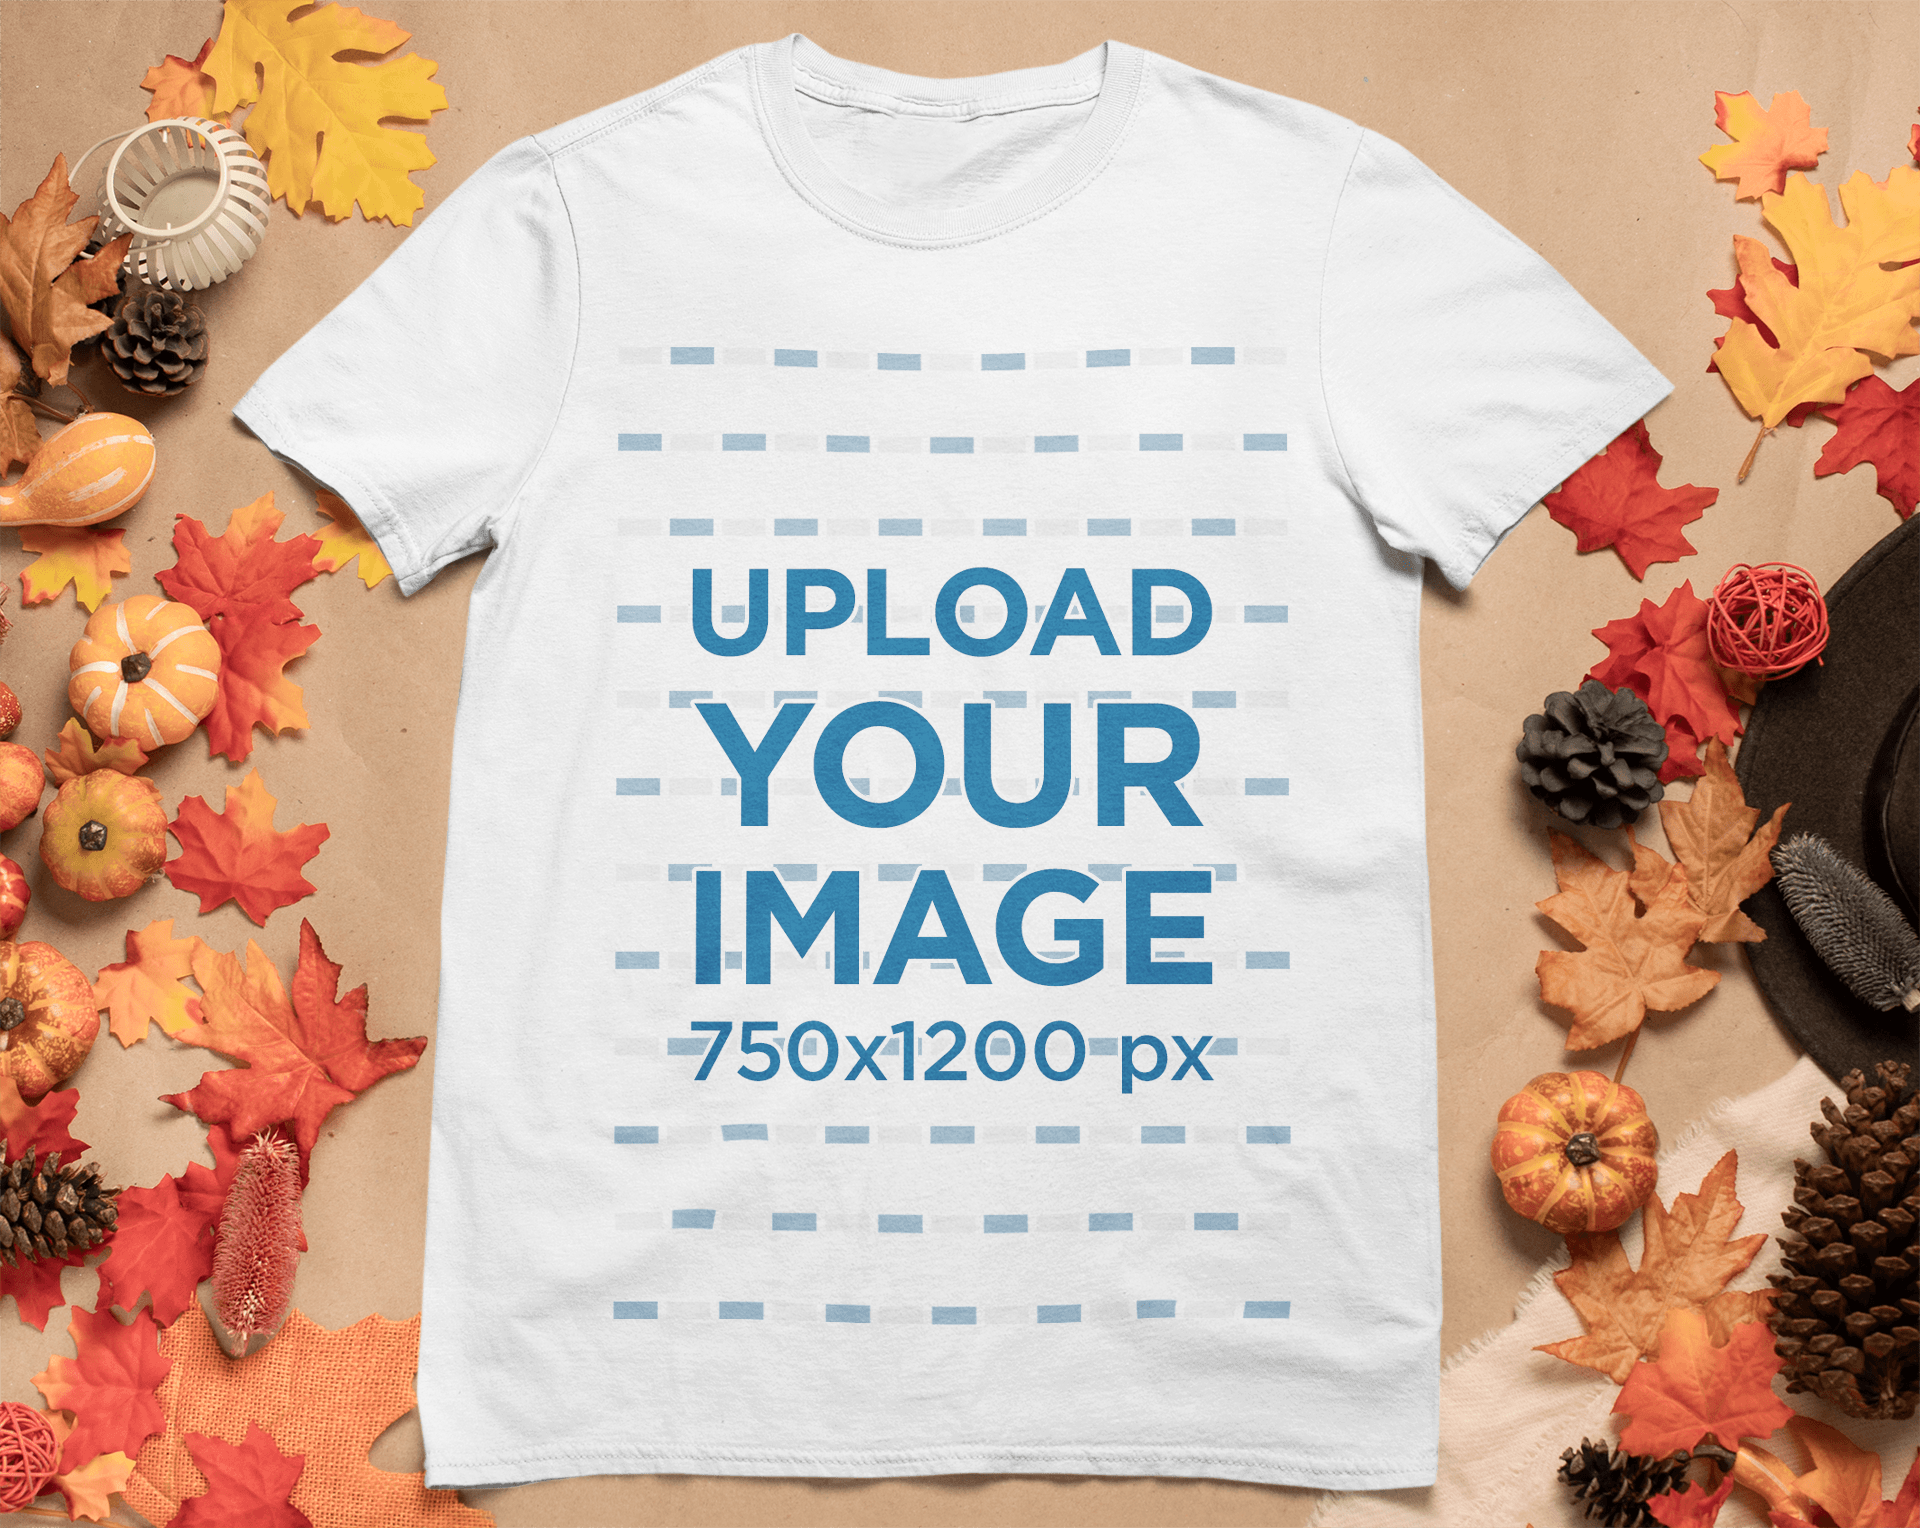 Mockup of a T-Shirt Surrounded by Autumn Ornaments m51